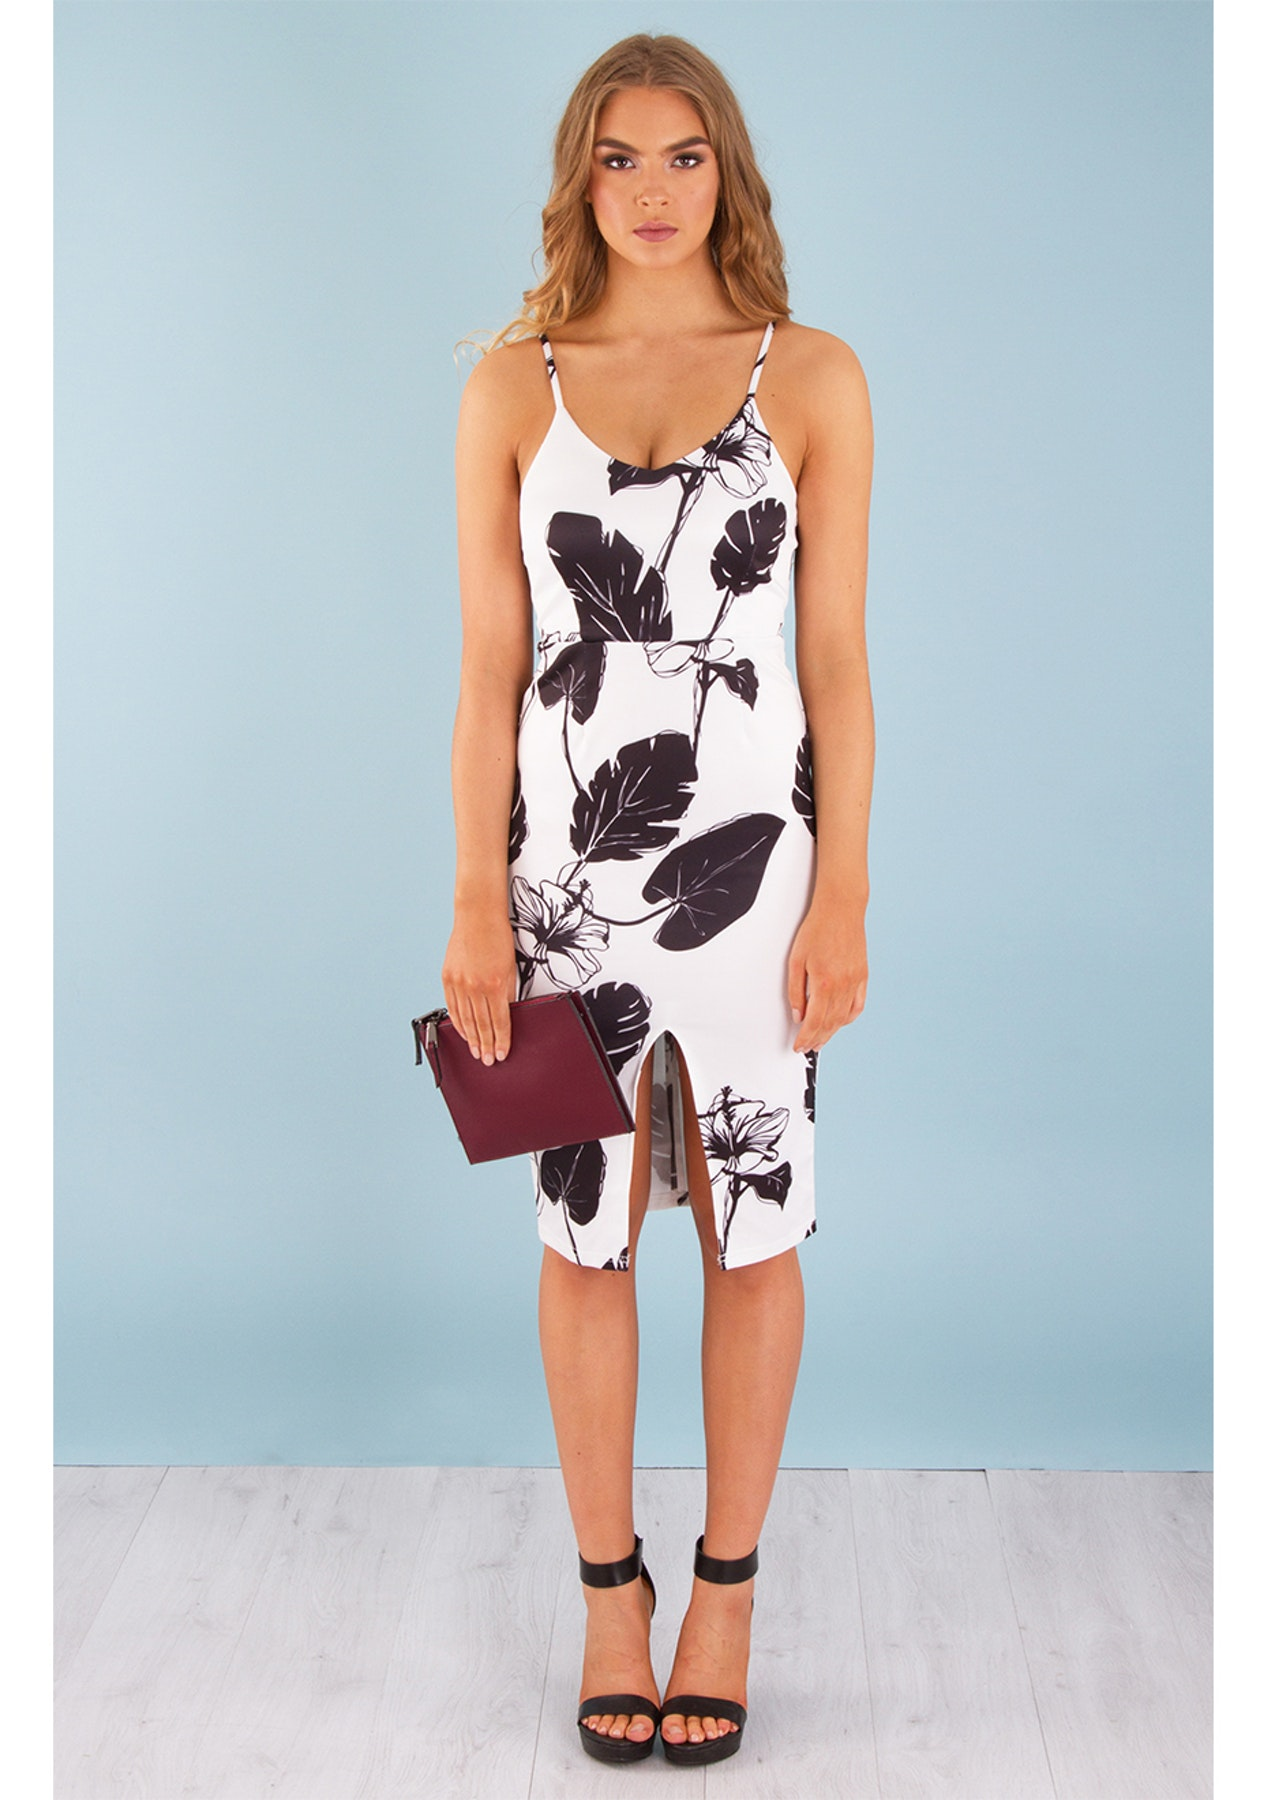 Printed Split Front Cocktail Dress - Black/White - Party Ready - Onceit